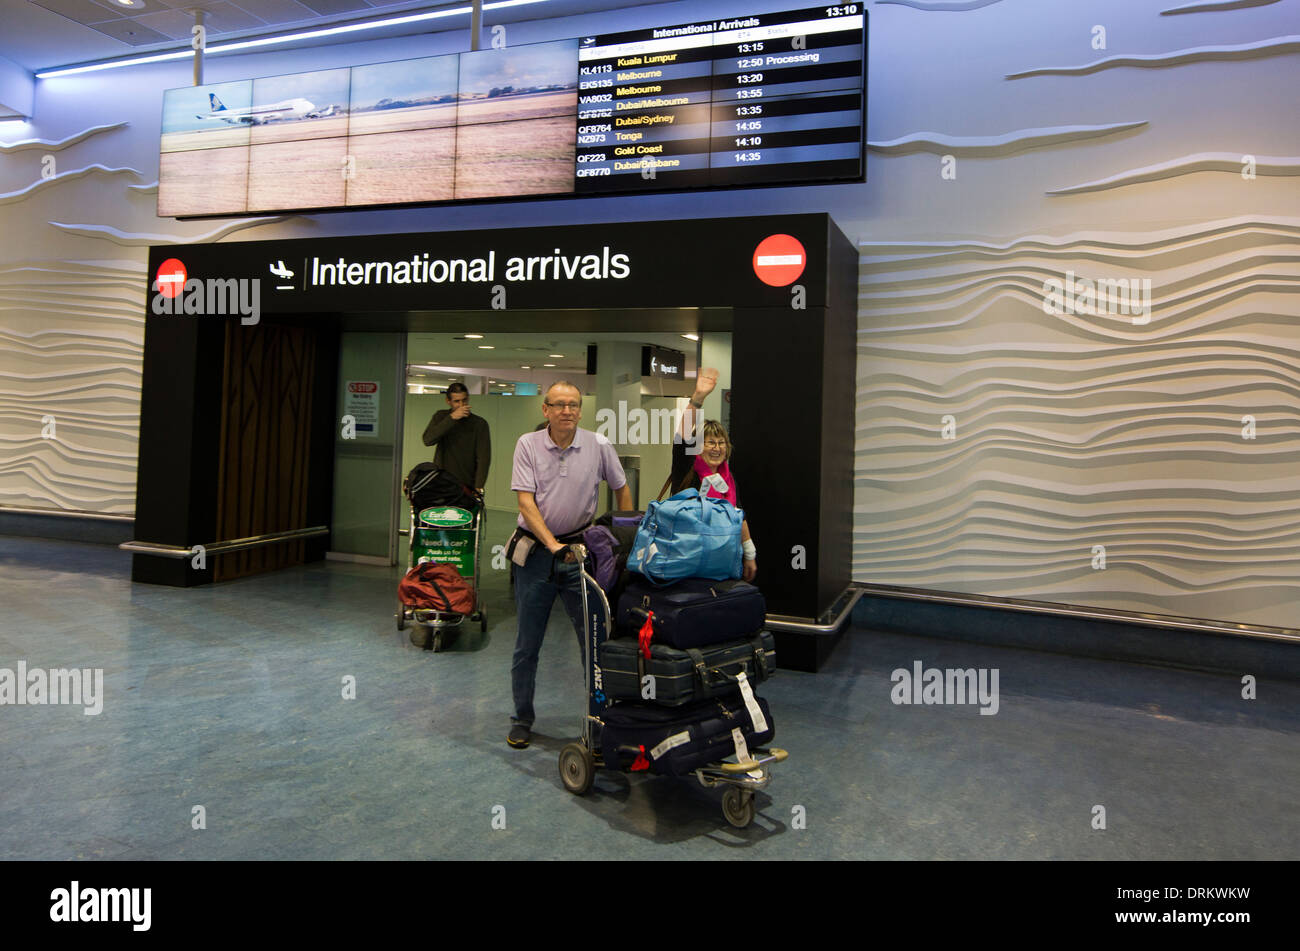 Visitors arrive to Auckland Airport - Stock Image